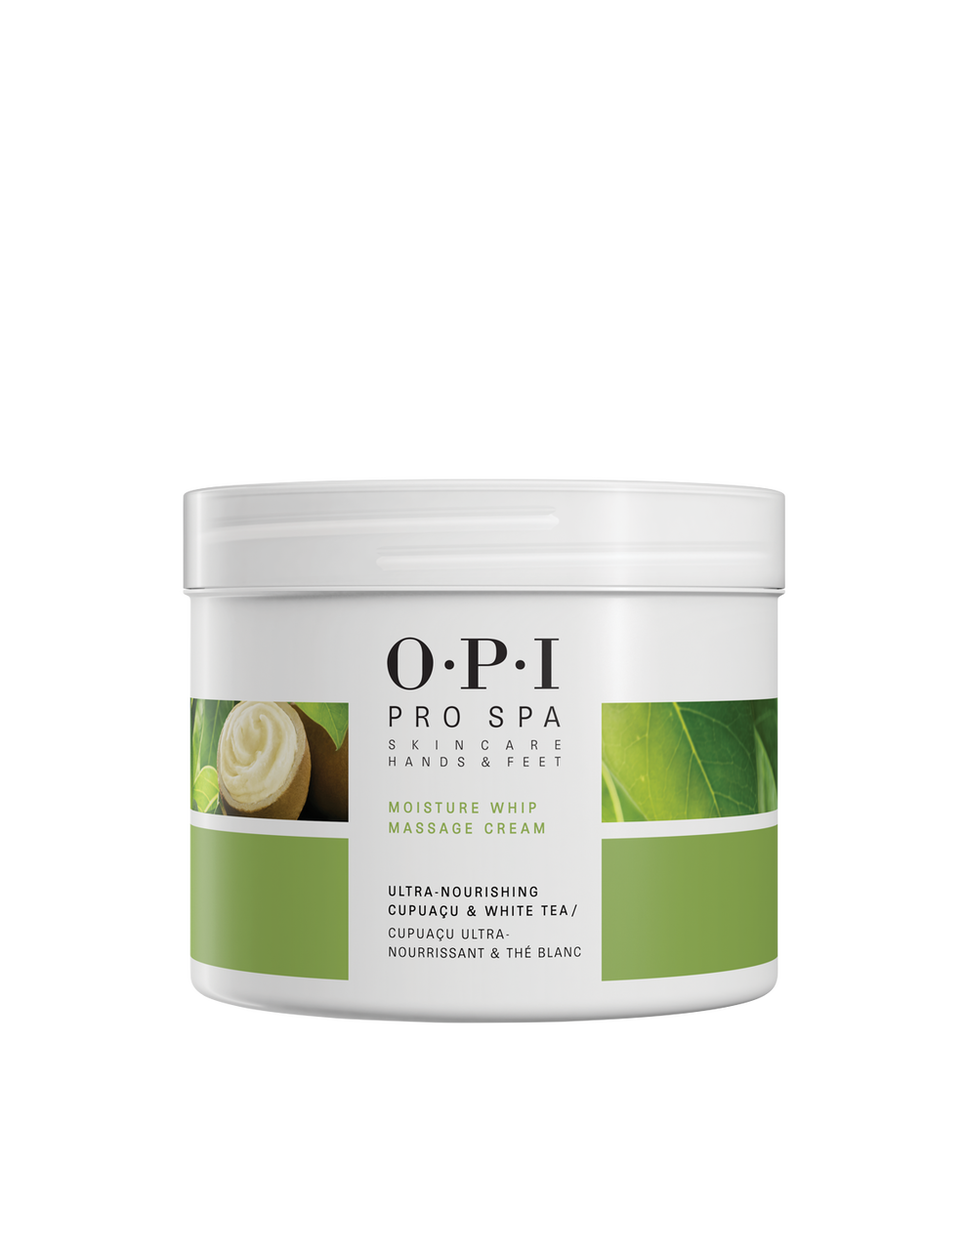 OPI ProSpa, #ASM22 - Moisture Whip Massage Cream 25oz